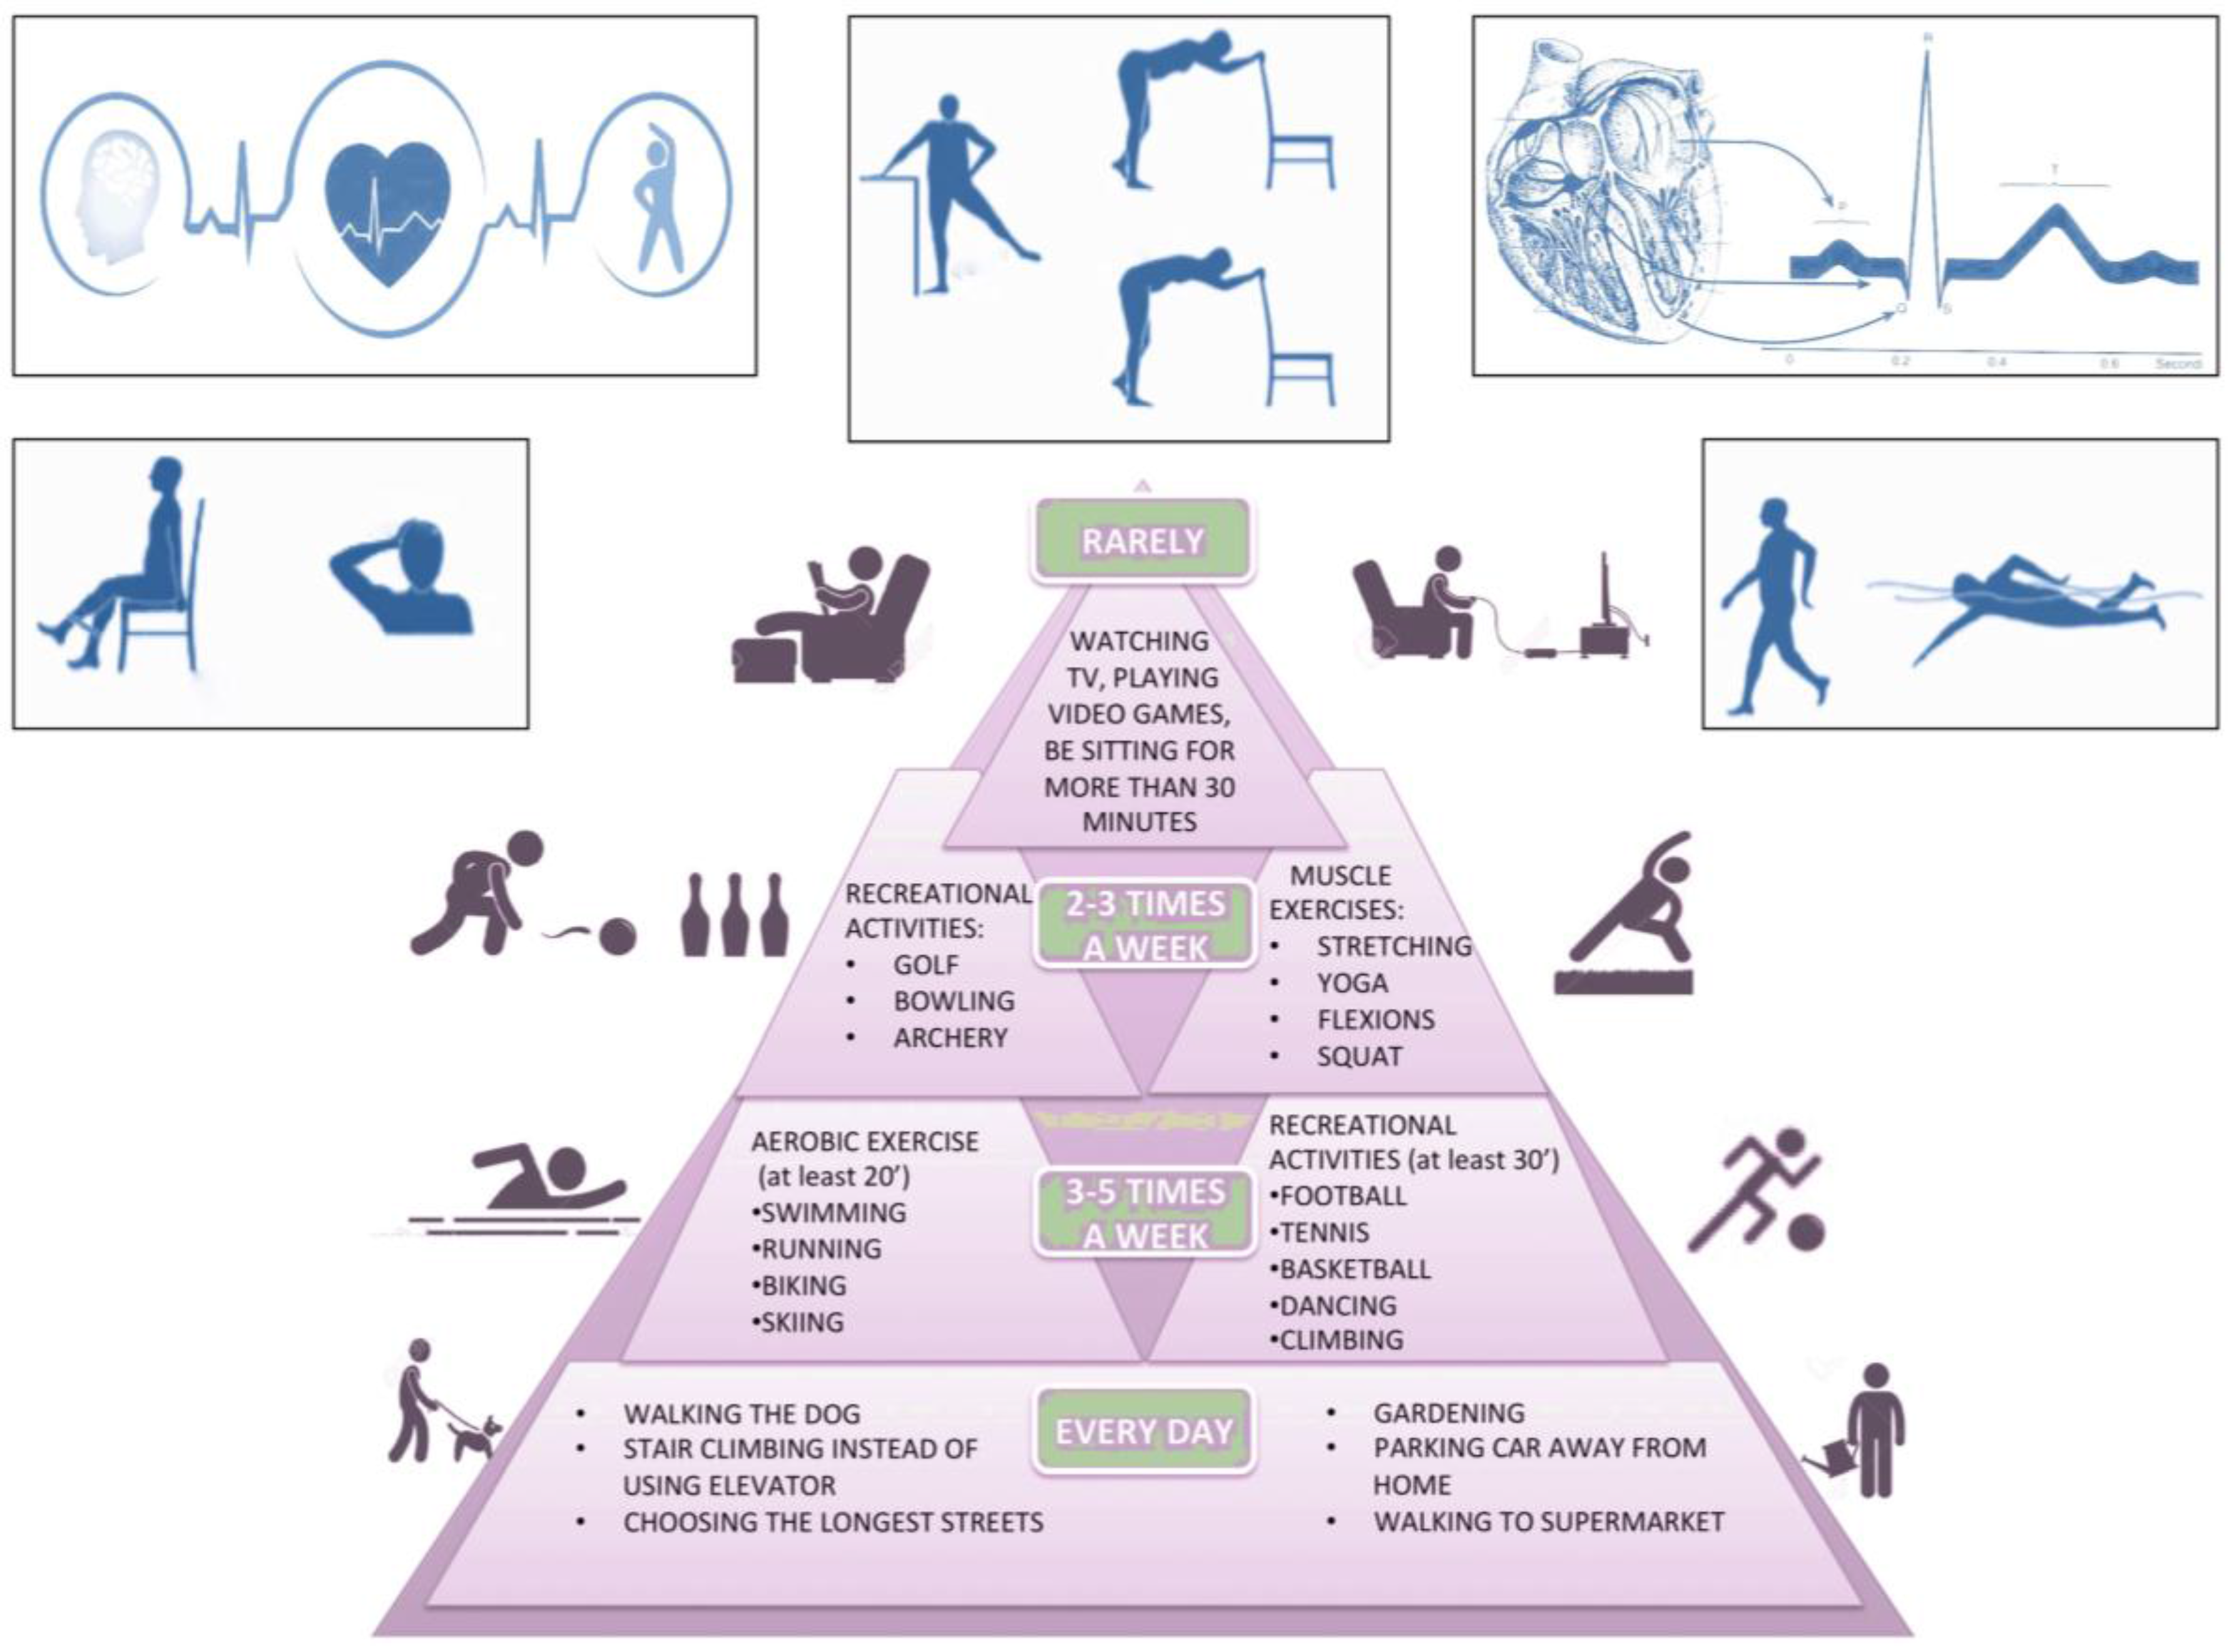 aha physical activity guidelines pdf